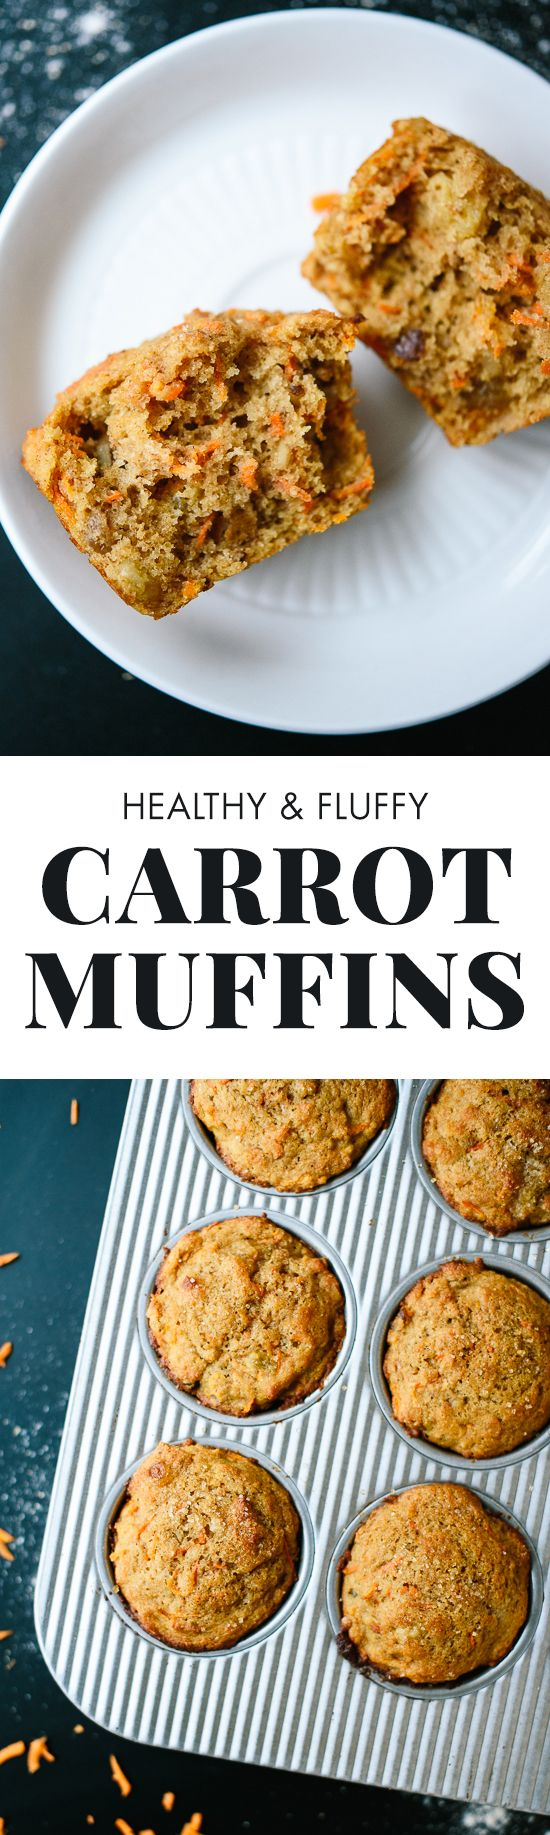 This healthy carrot muffins recipe tastes amazing! These are made with whole wheat flour and sweetened with maple syrup! cookieandkate.com